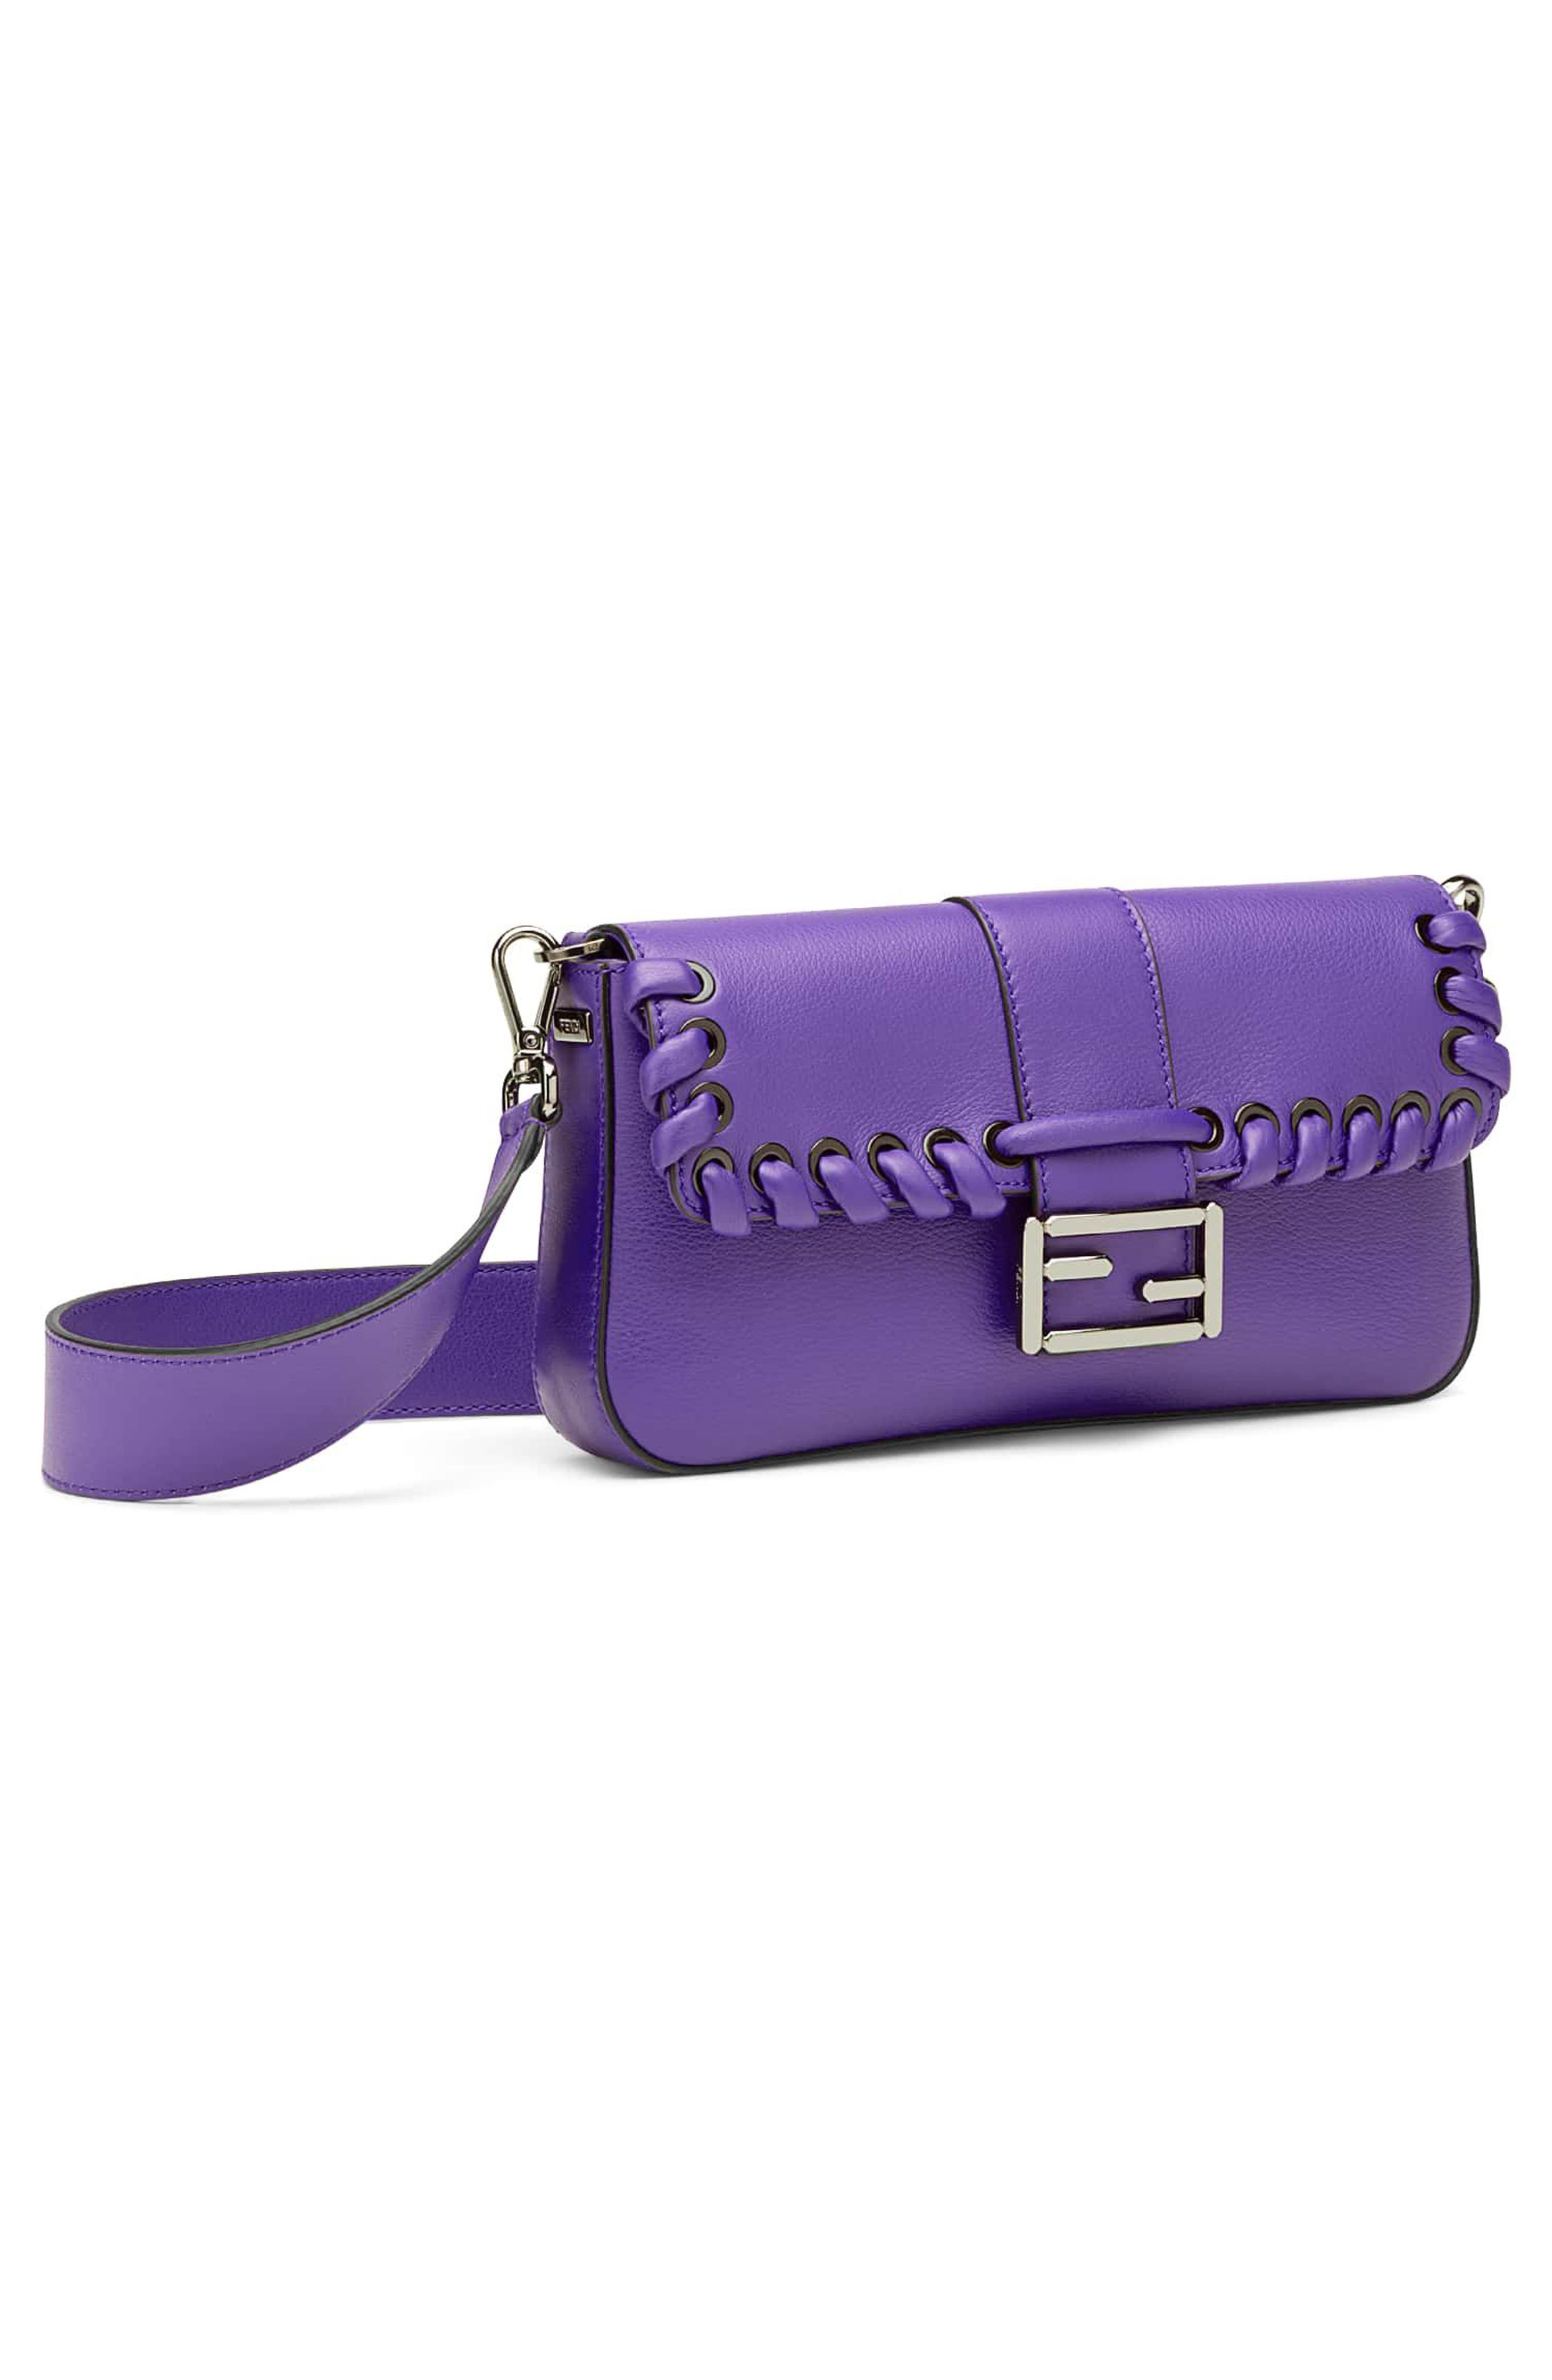 'Dolce' Calfskin Leather Baguette,                             Alternate thumbnail 5, color,                             Purple Rain/ Ruthenium